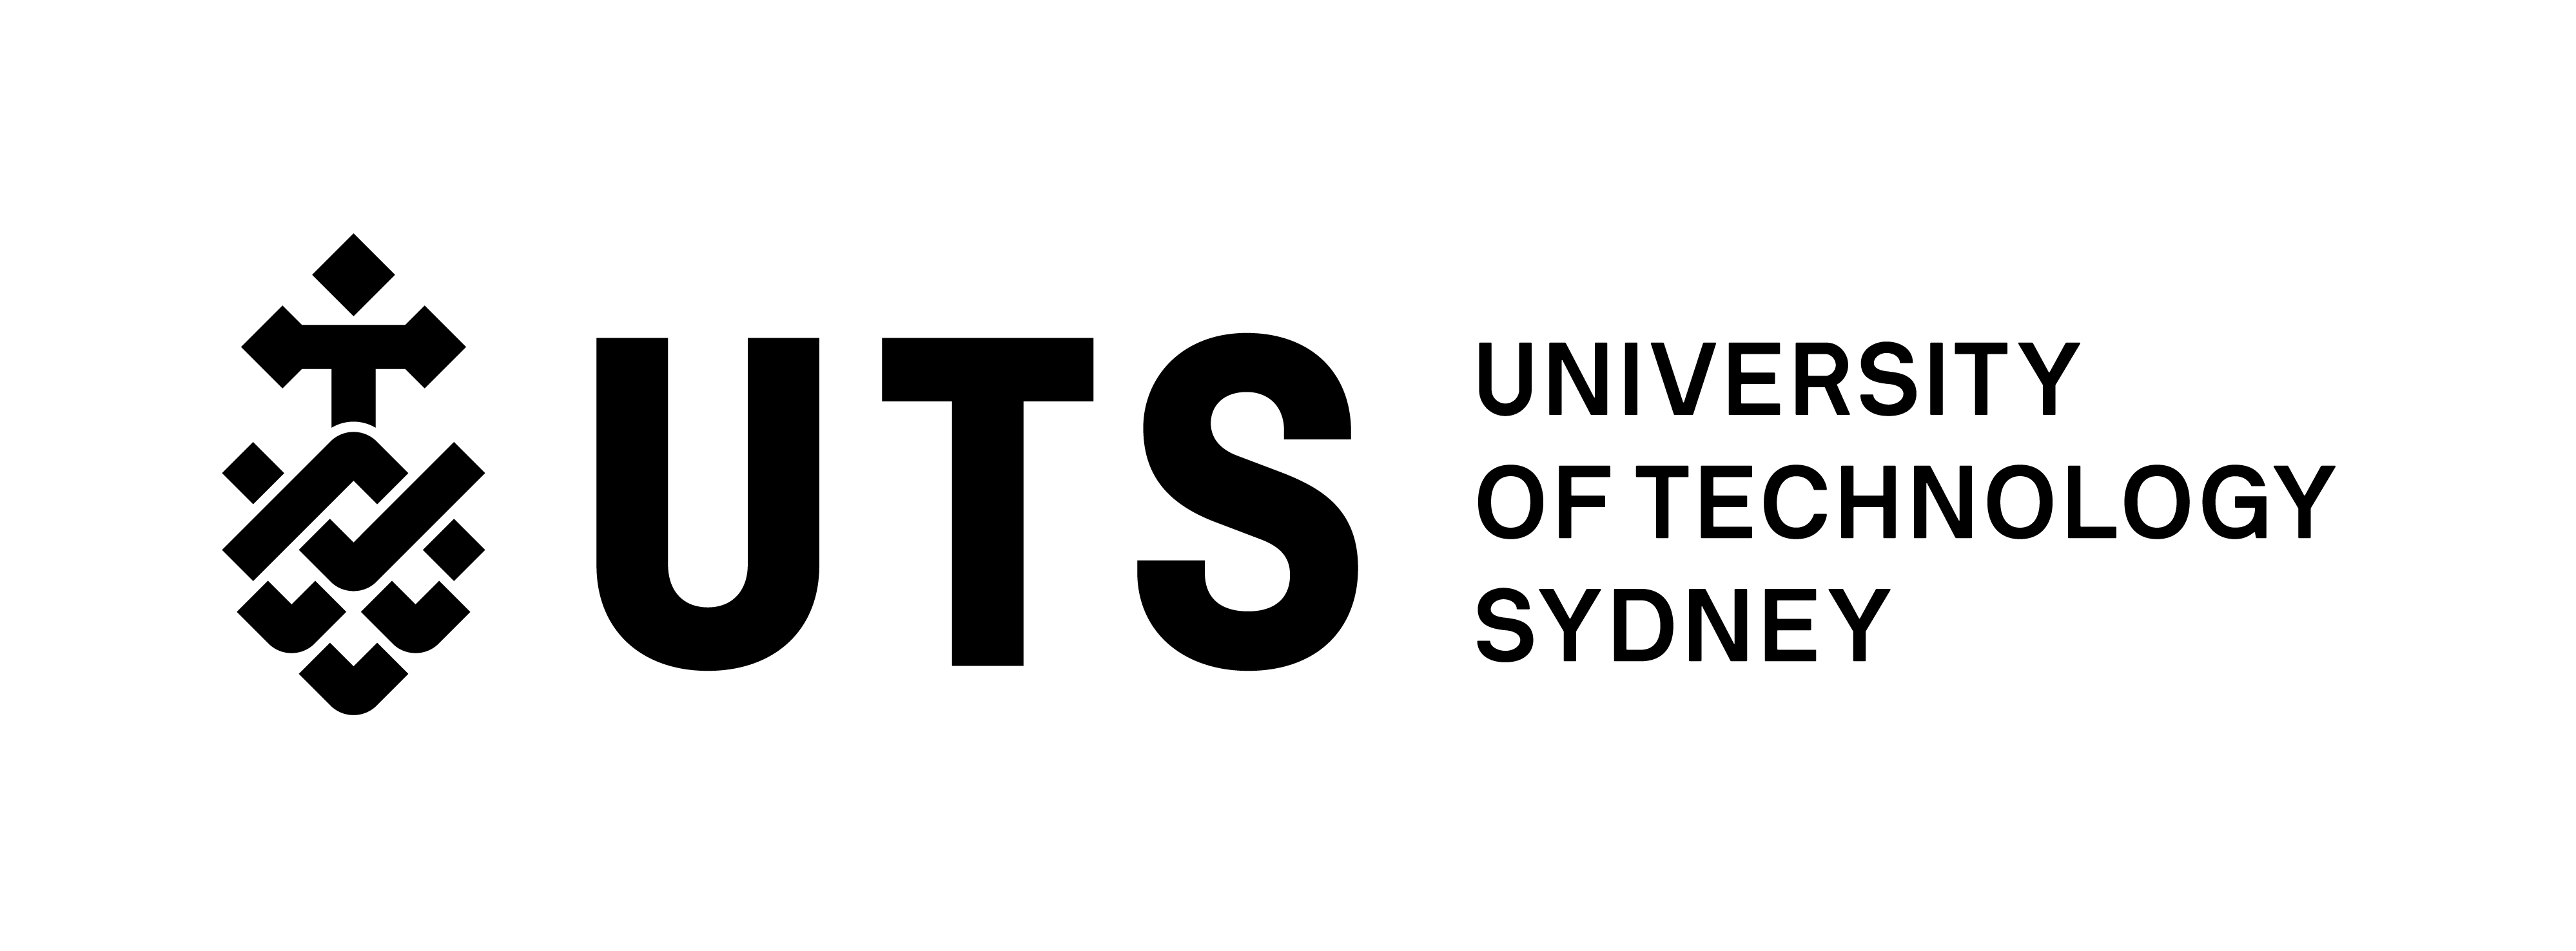 University of Technology Sydney - Graduate Certificate in Human Resource Management